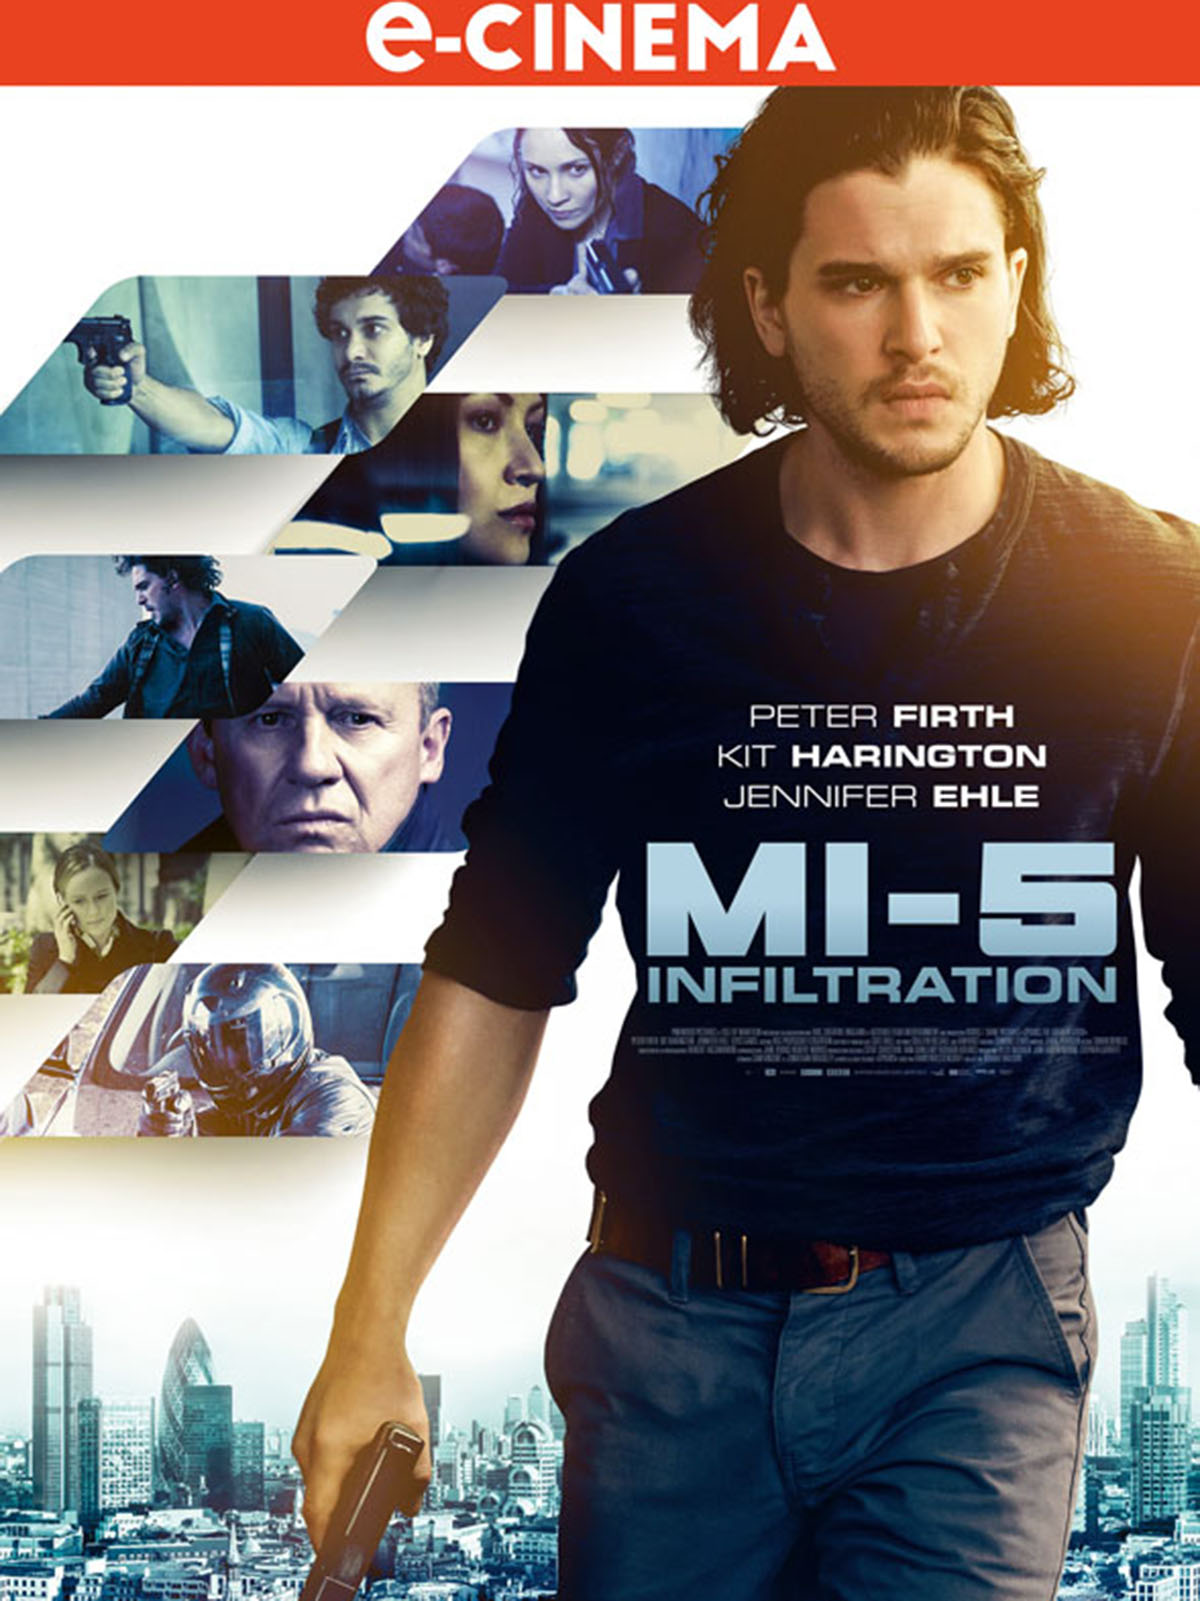 MI-5 INFILTRATION en streaming uptobox